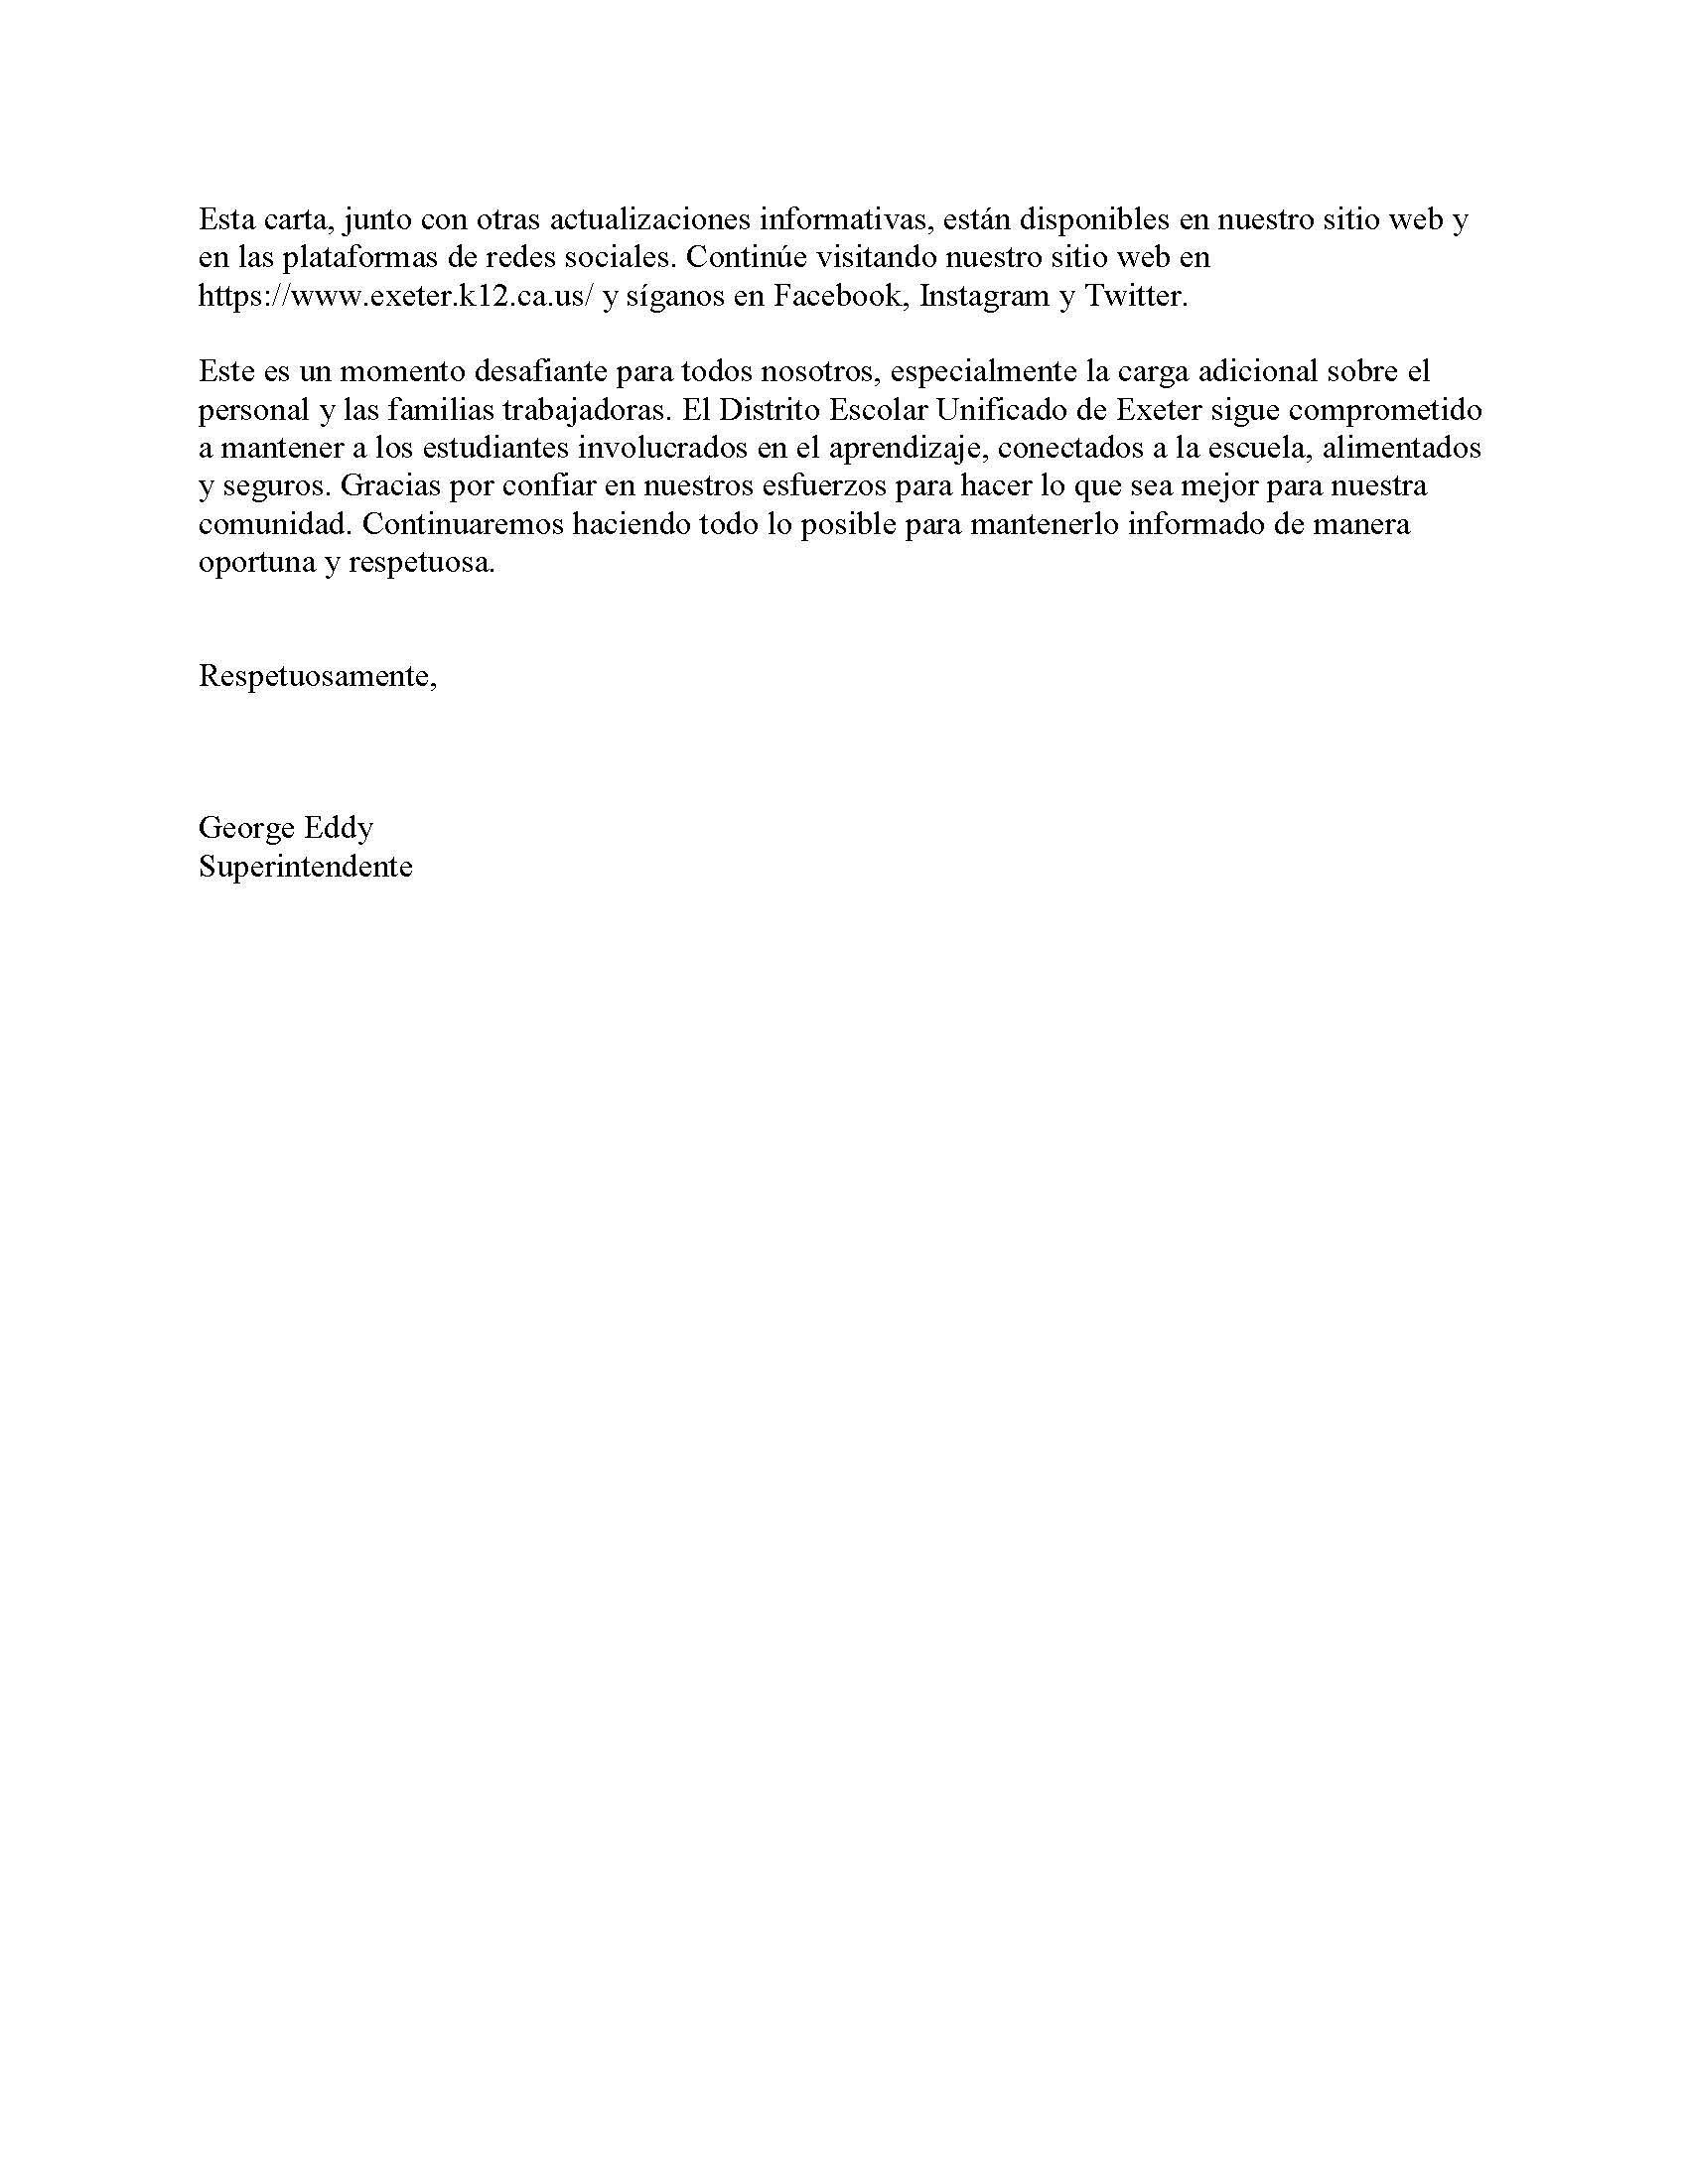 EUSD Superintendent's Community Letter- Spanish page 4